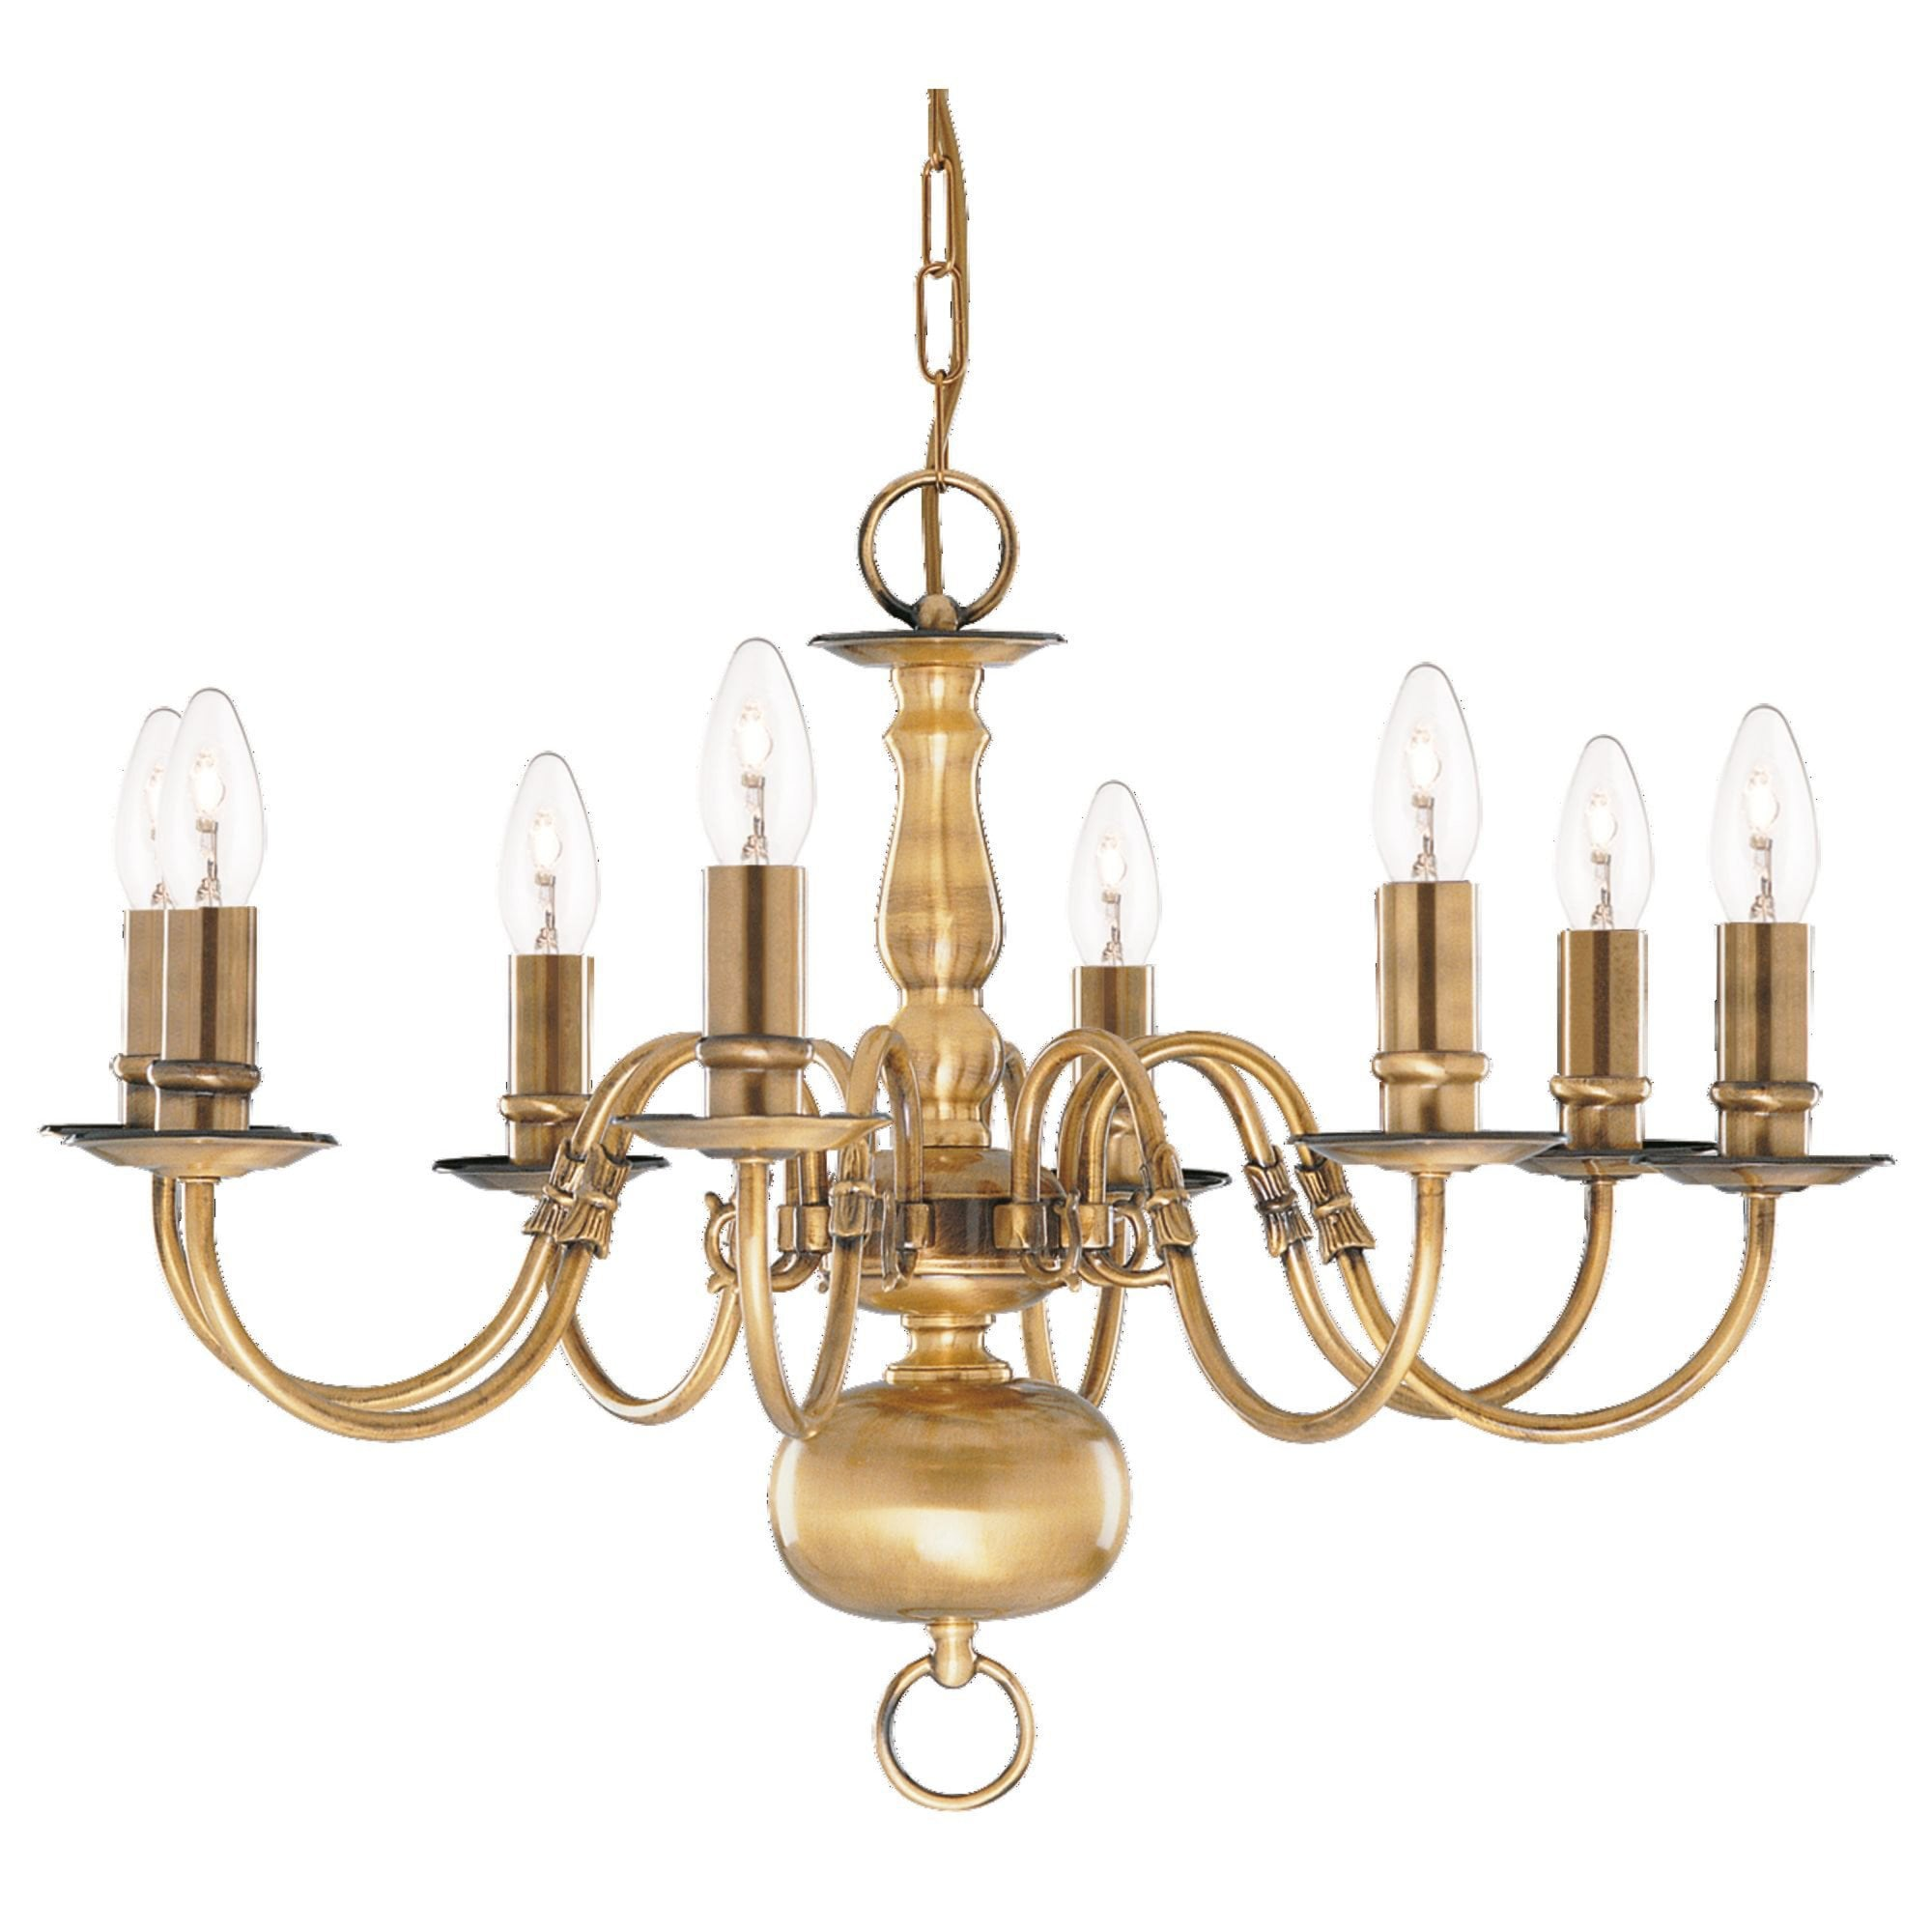 Flemish Solid Antique Brass 8 Light Chandelier With Metal Candle Covers Moonlight Design